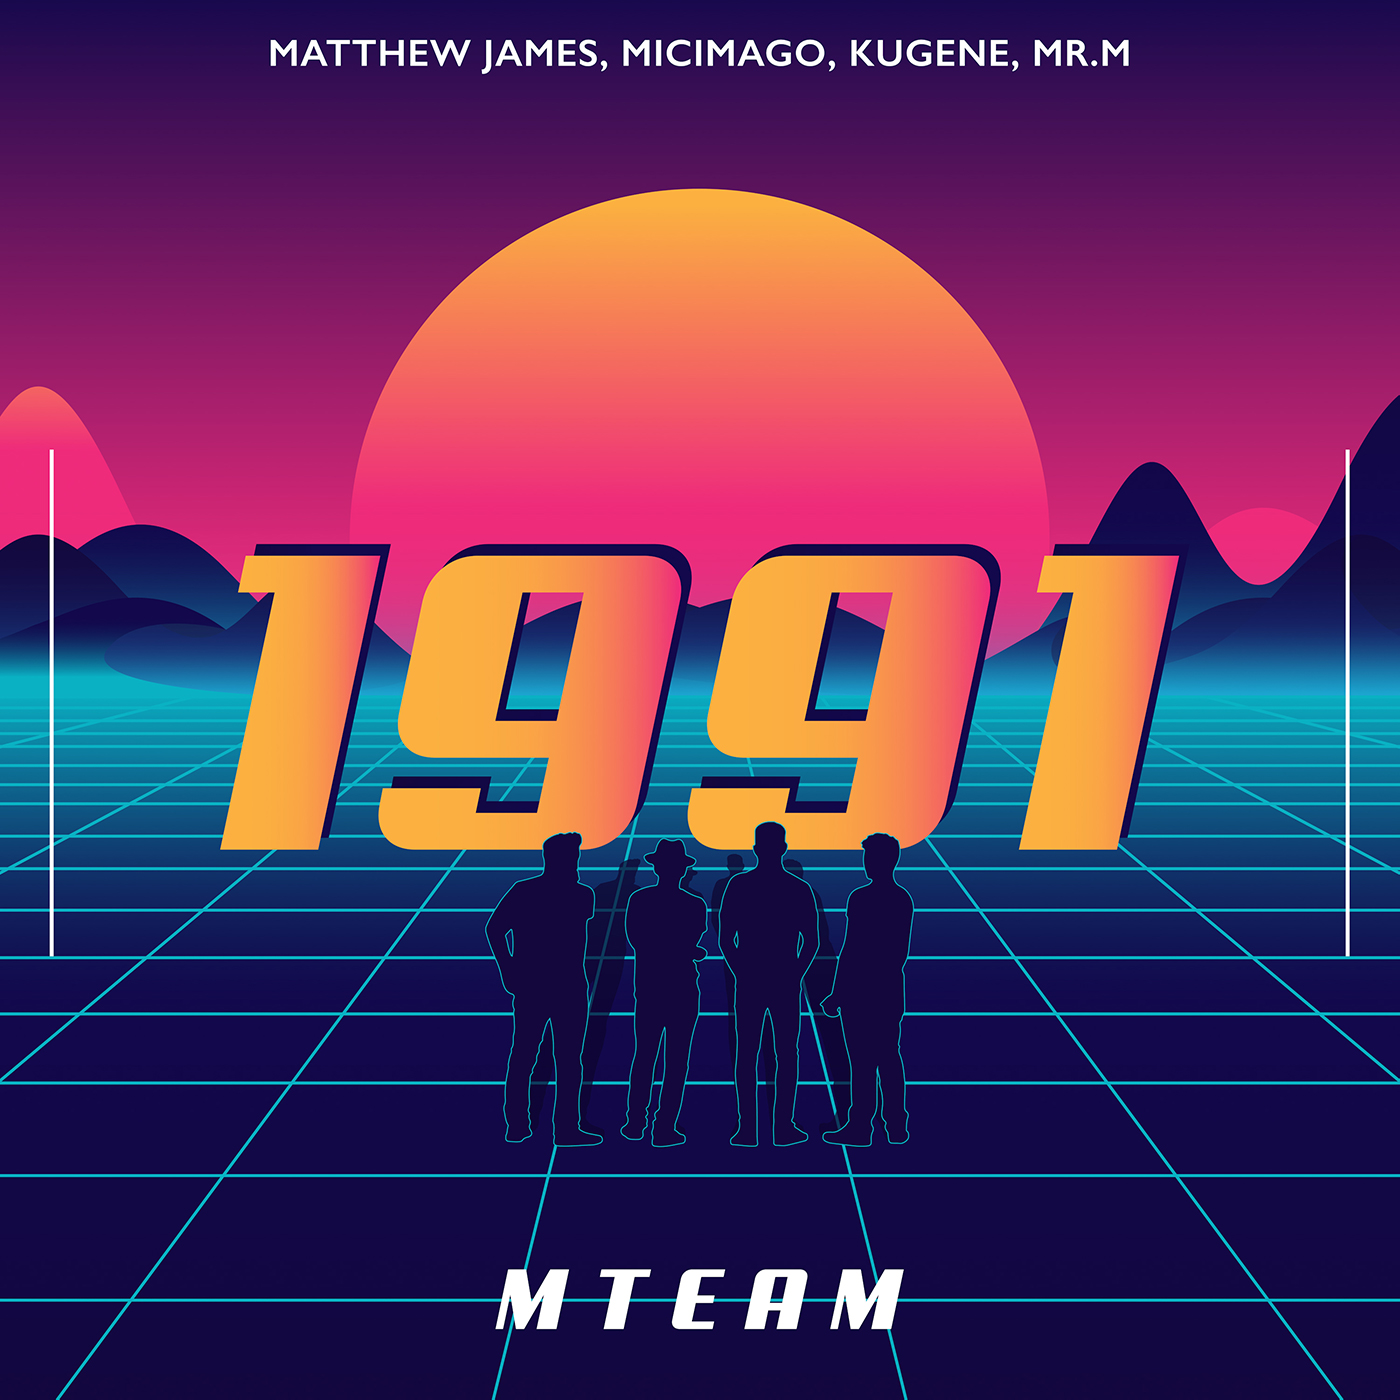 New Release by Matthew James, Micimago, Kugene and Mr. M aka MTEAM